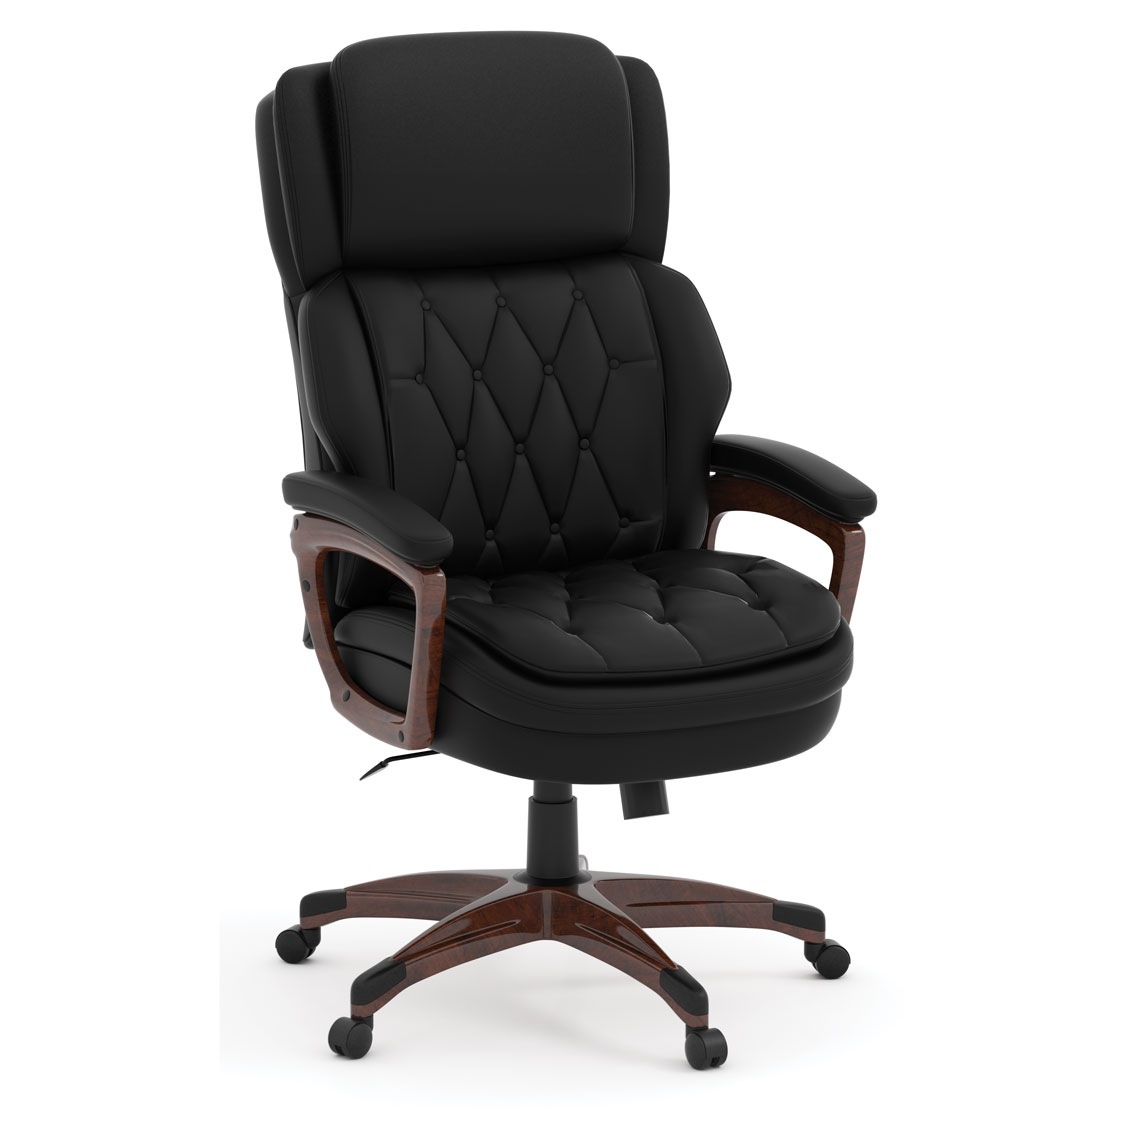 OfficeSource Charleston Collection Executive High Back, Tufted Seat and Back with Plastic Wooden Arms and Base